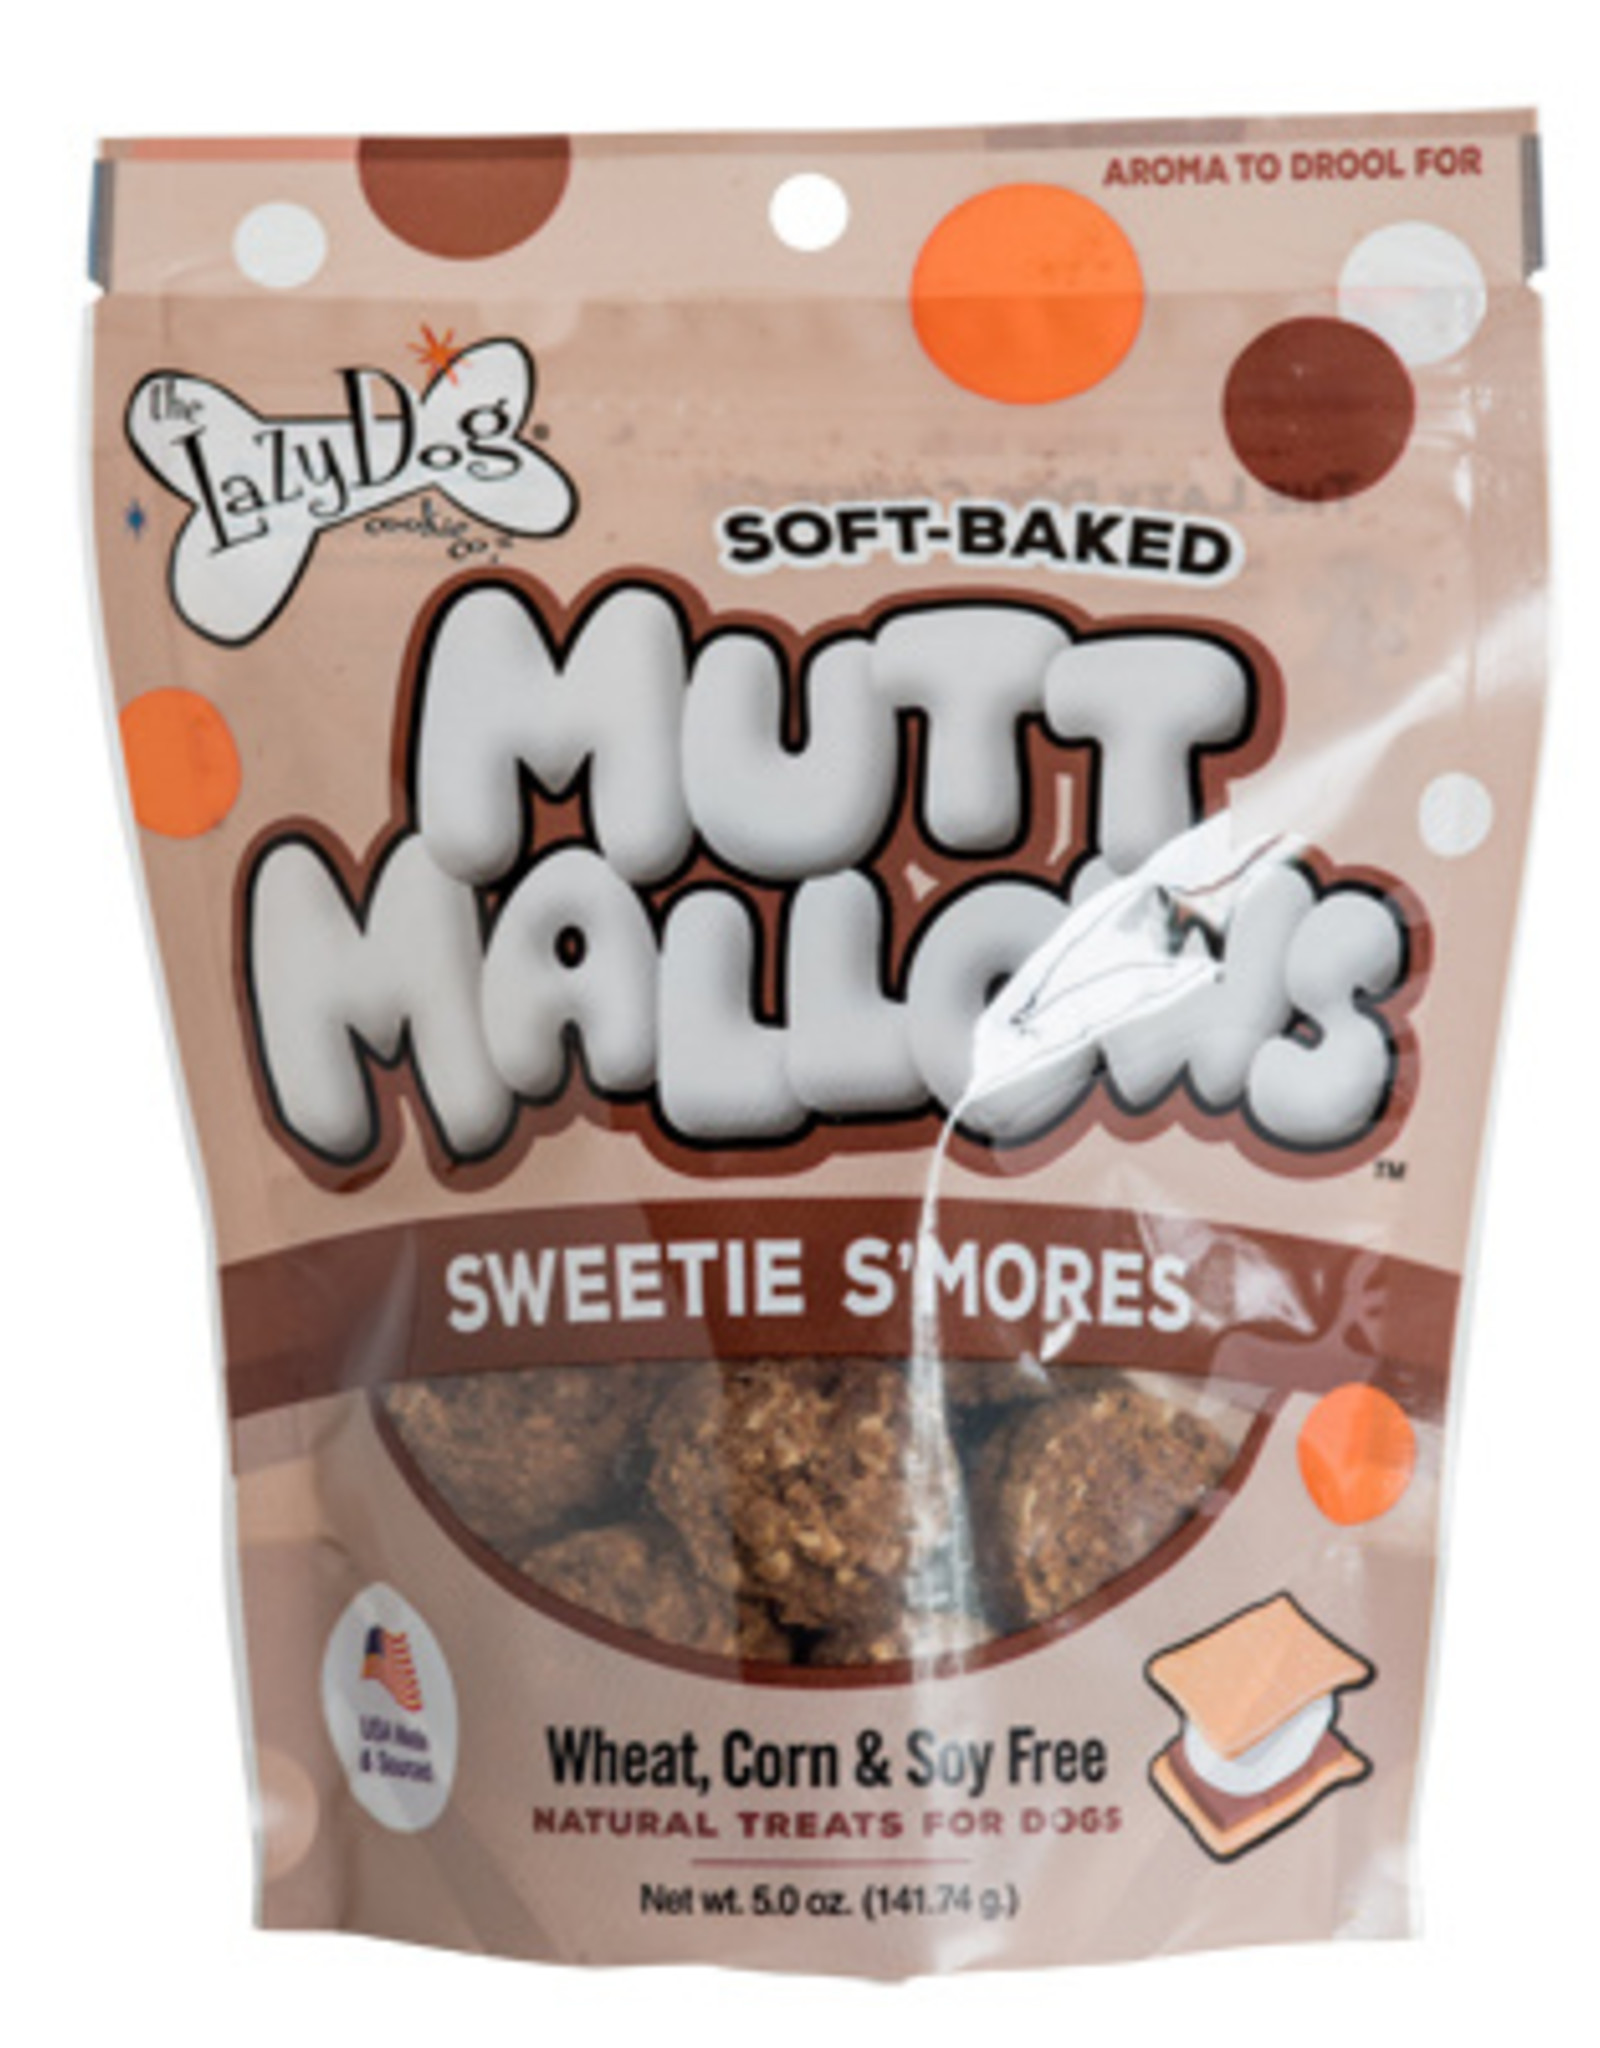 Lazy Dog Cookie Company Mutt Mallows - Sweetie S'mores